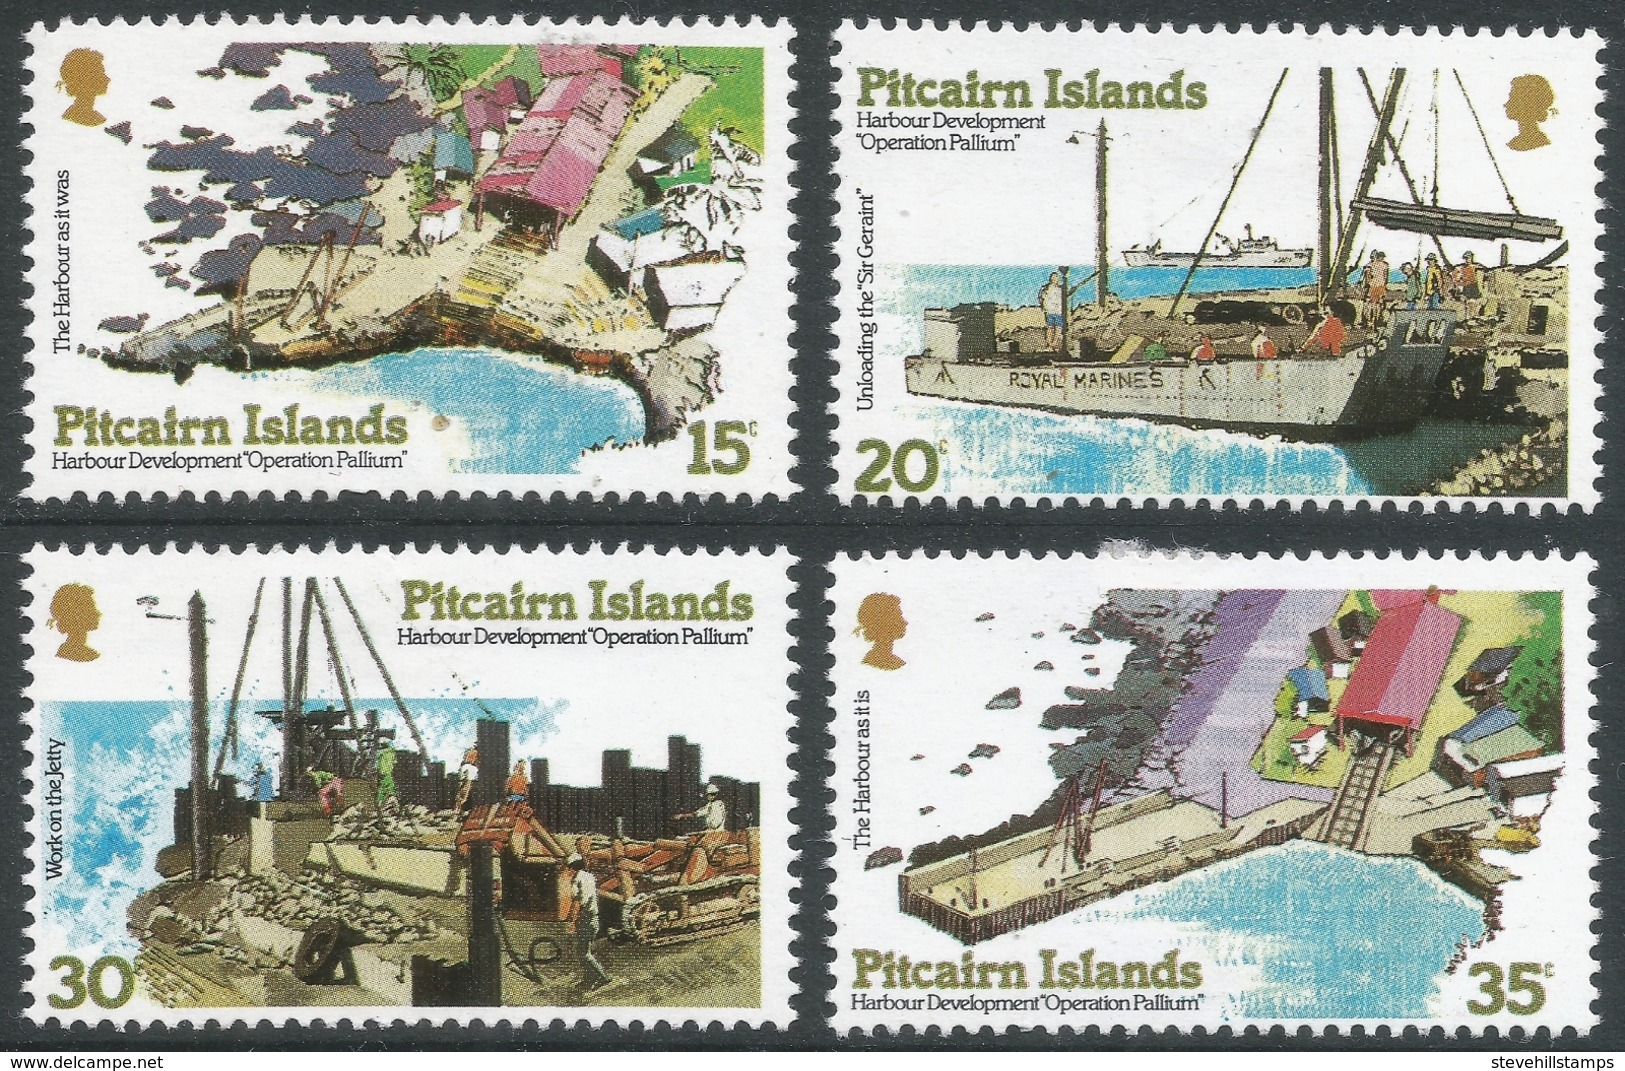 """Pitcairn Islands. 1978 """"Operation Pallium"""" (Harbour Development Project) . MH Complete Set. SG 190-193 - Stamps"""